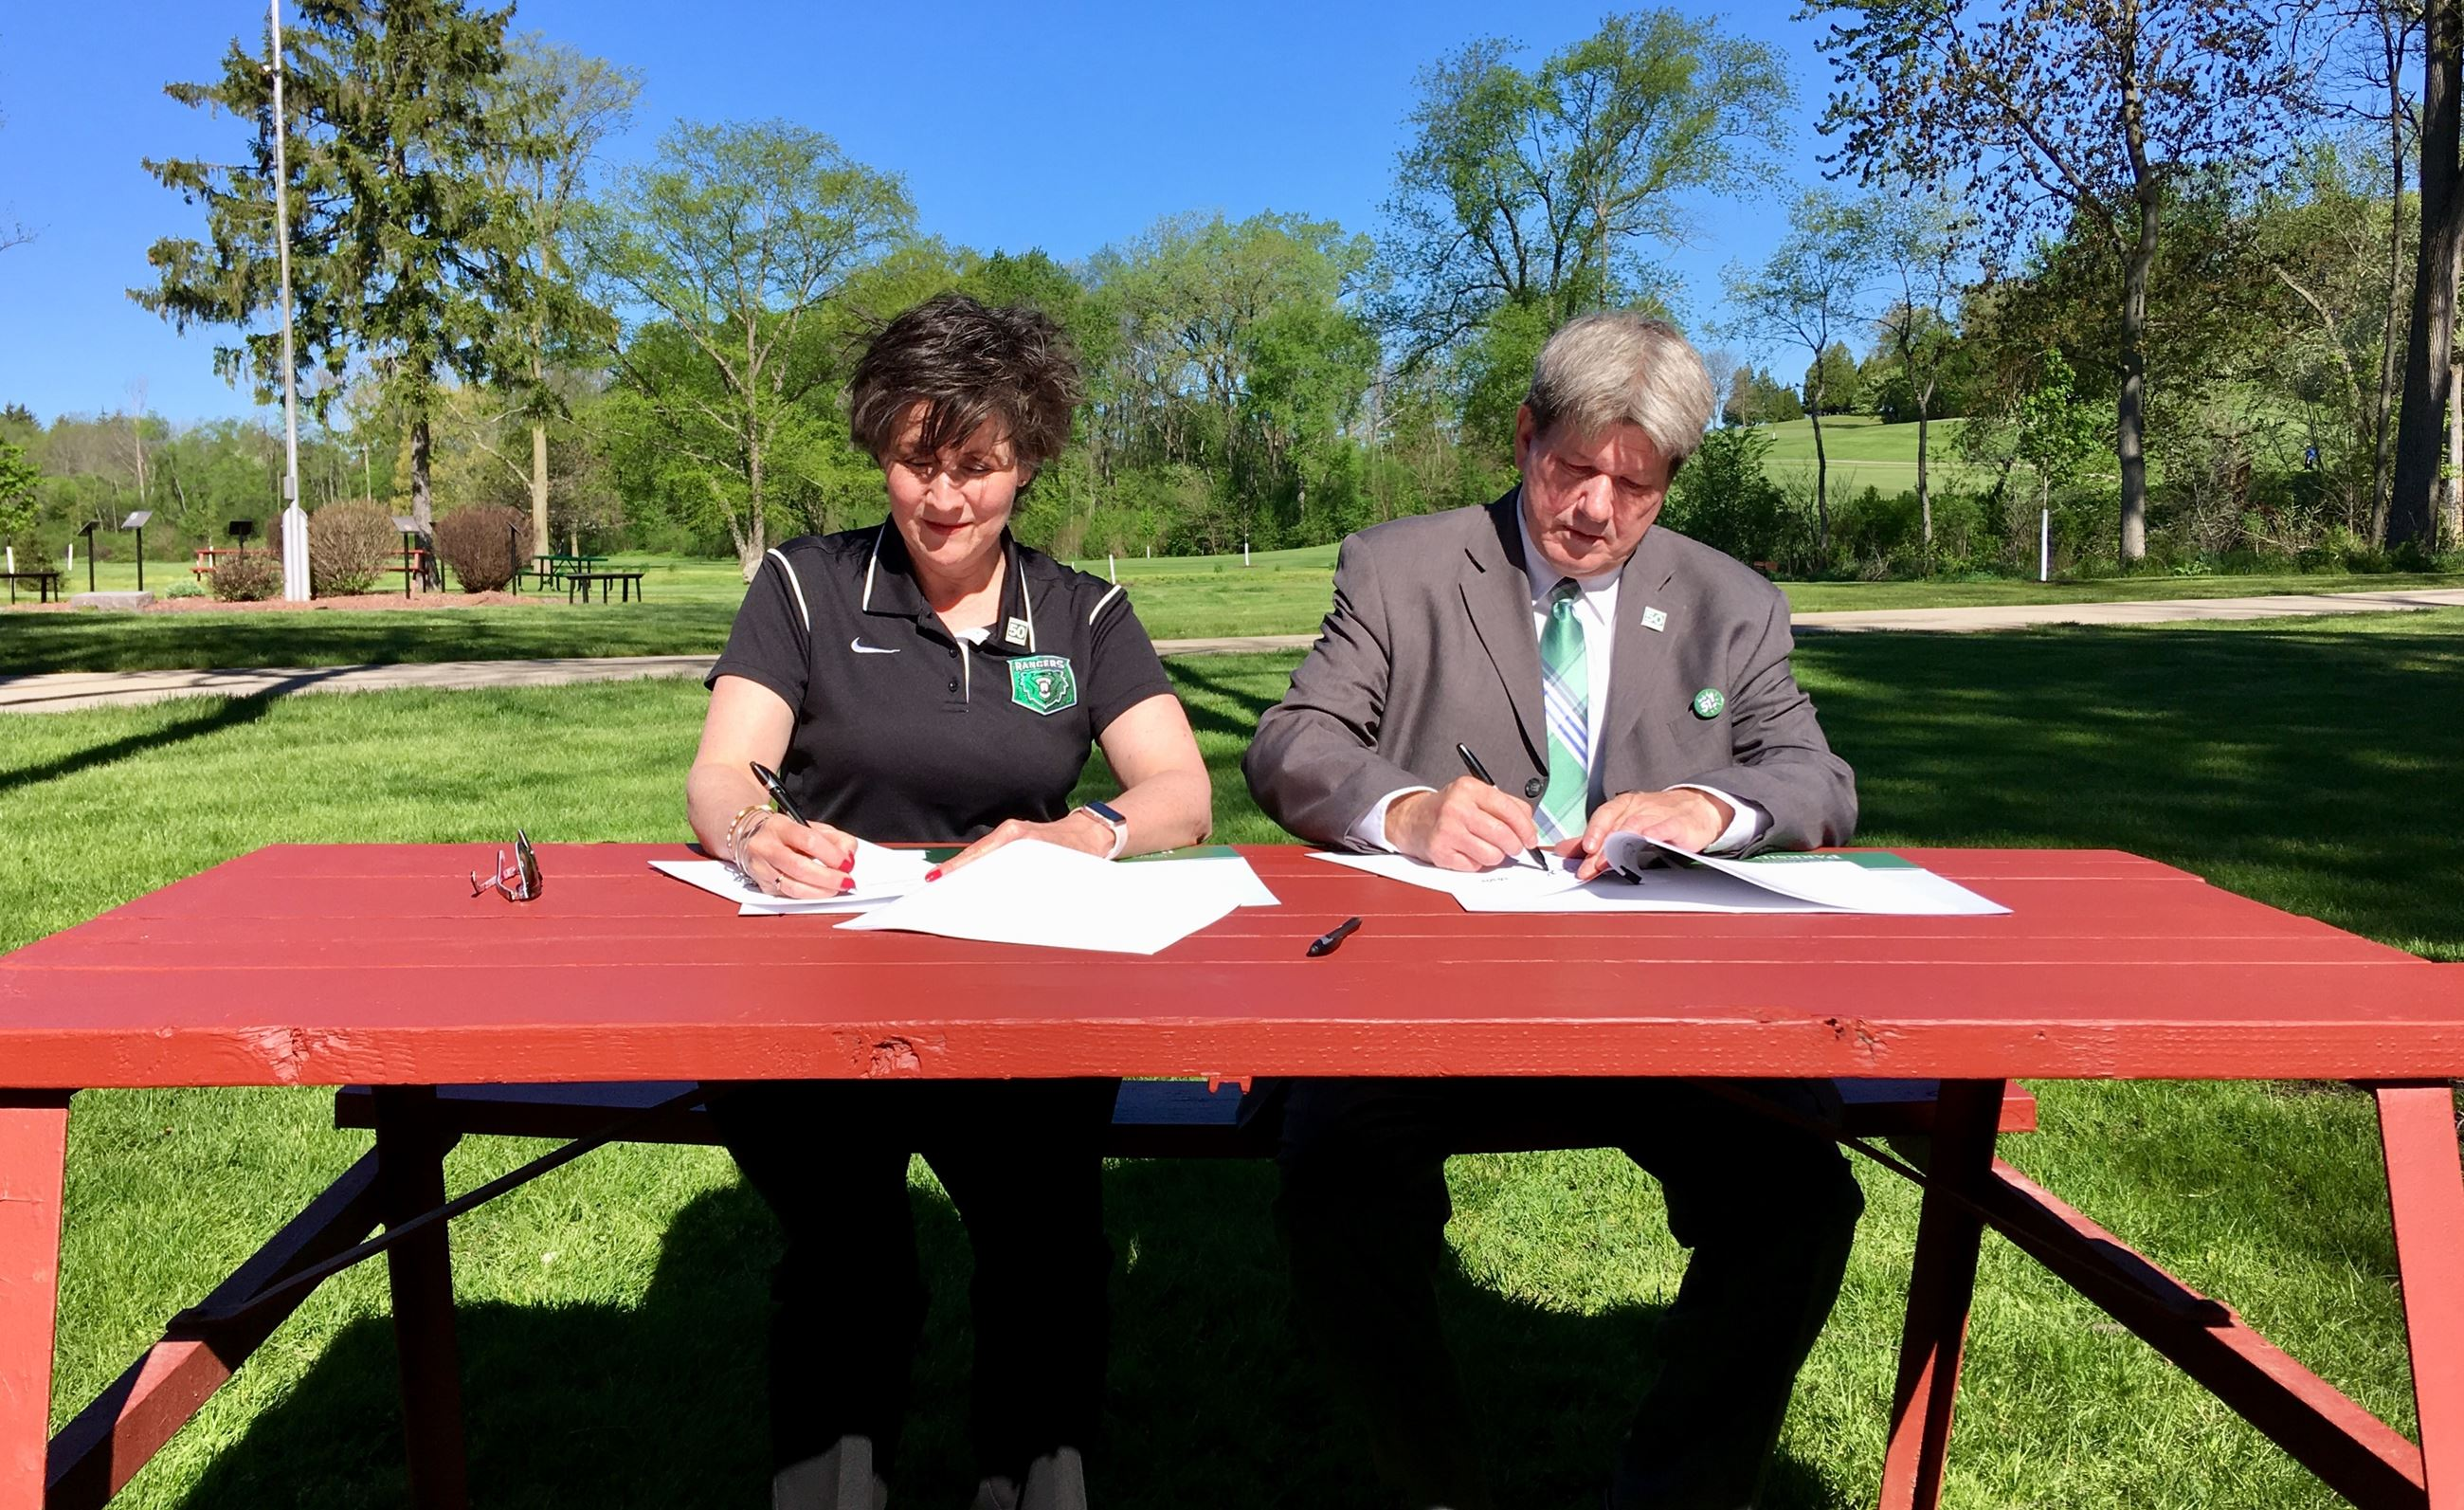 County Executive Jim Kreuser and UW-Parkside Chancellor Debbie Ford sign a collaborative land agreem